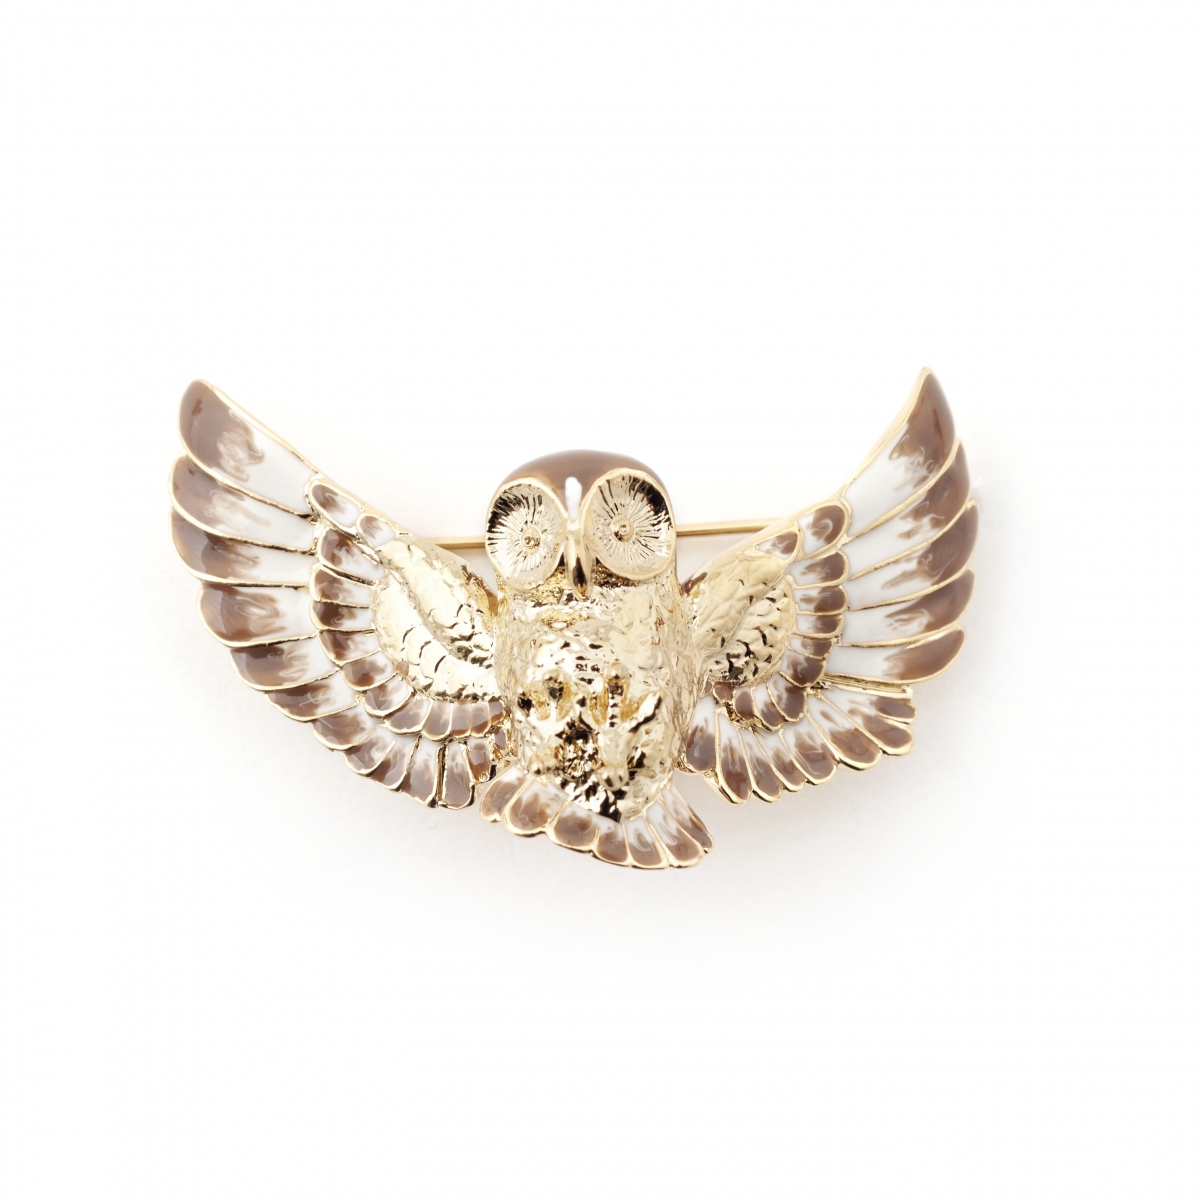 Flying Owl Brooch